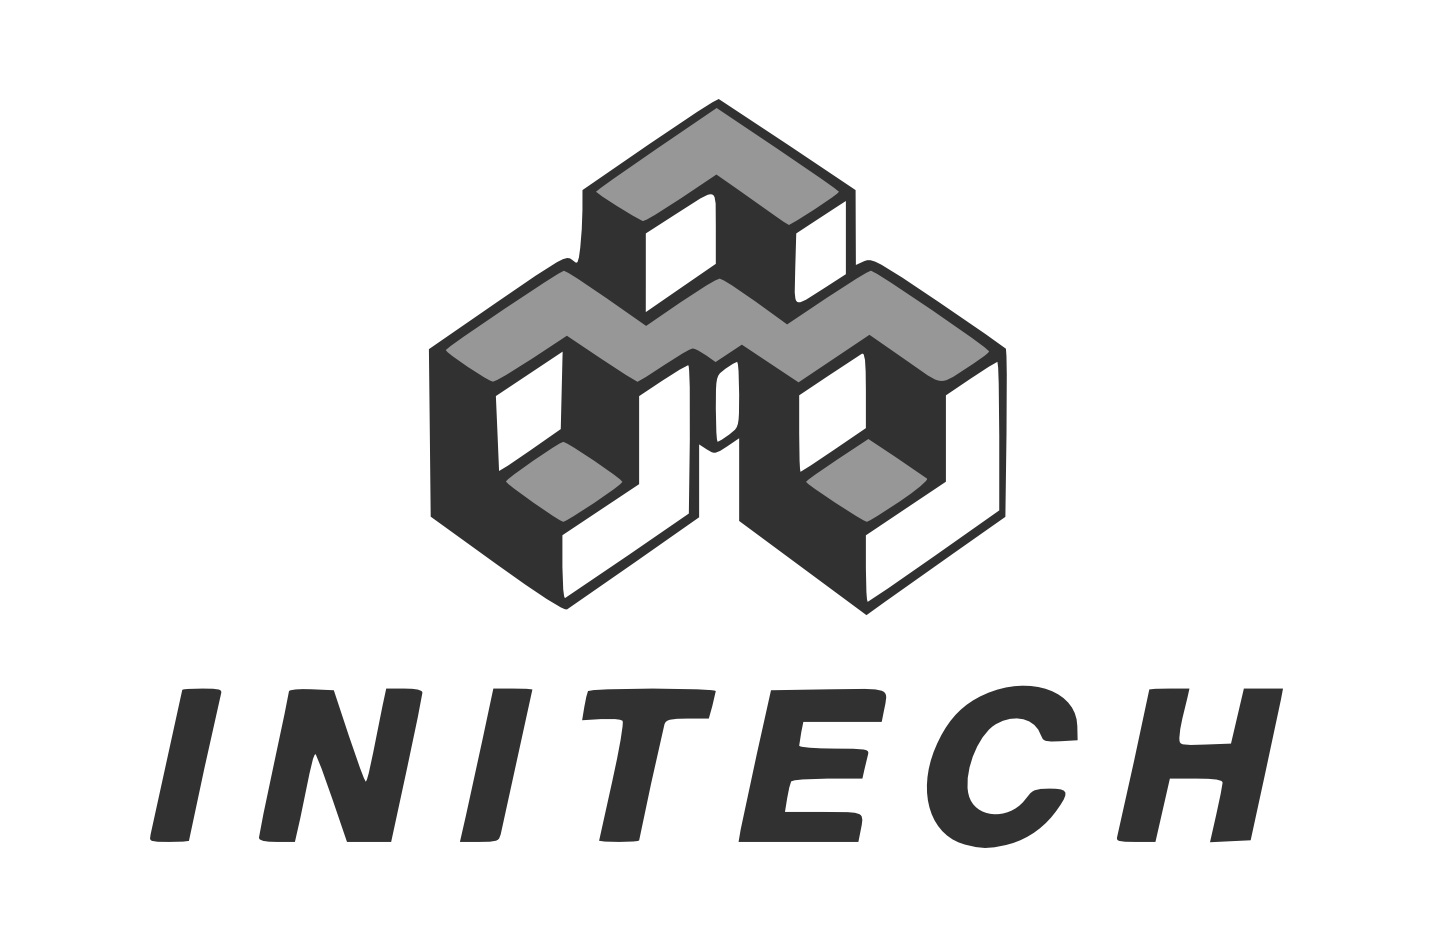 Initech Logo With No Tagline